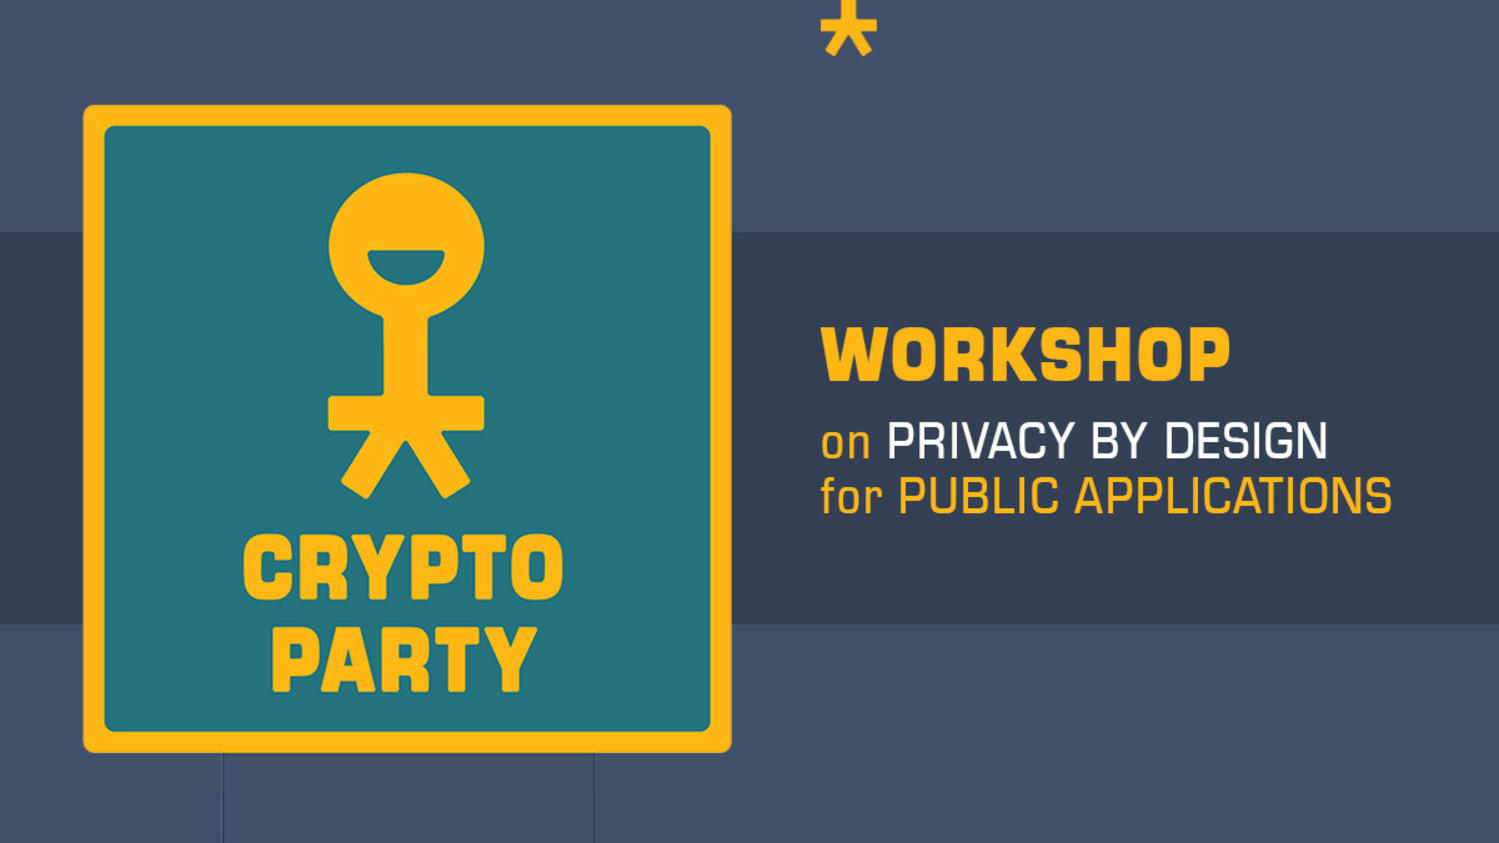 Workshop on Privacy by Design for Public Applications